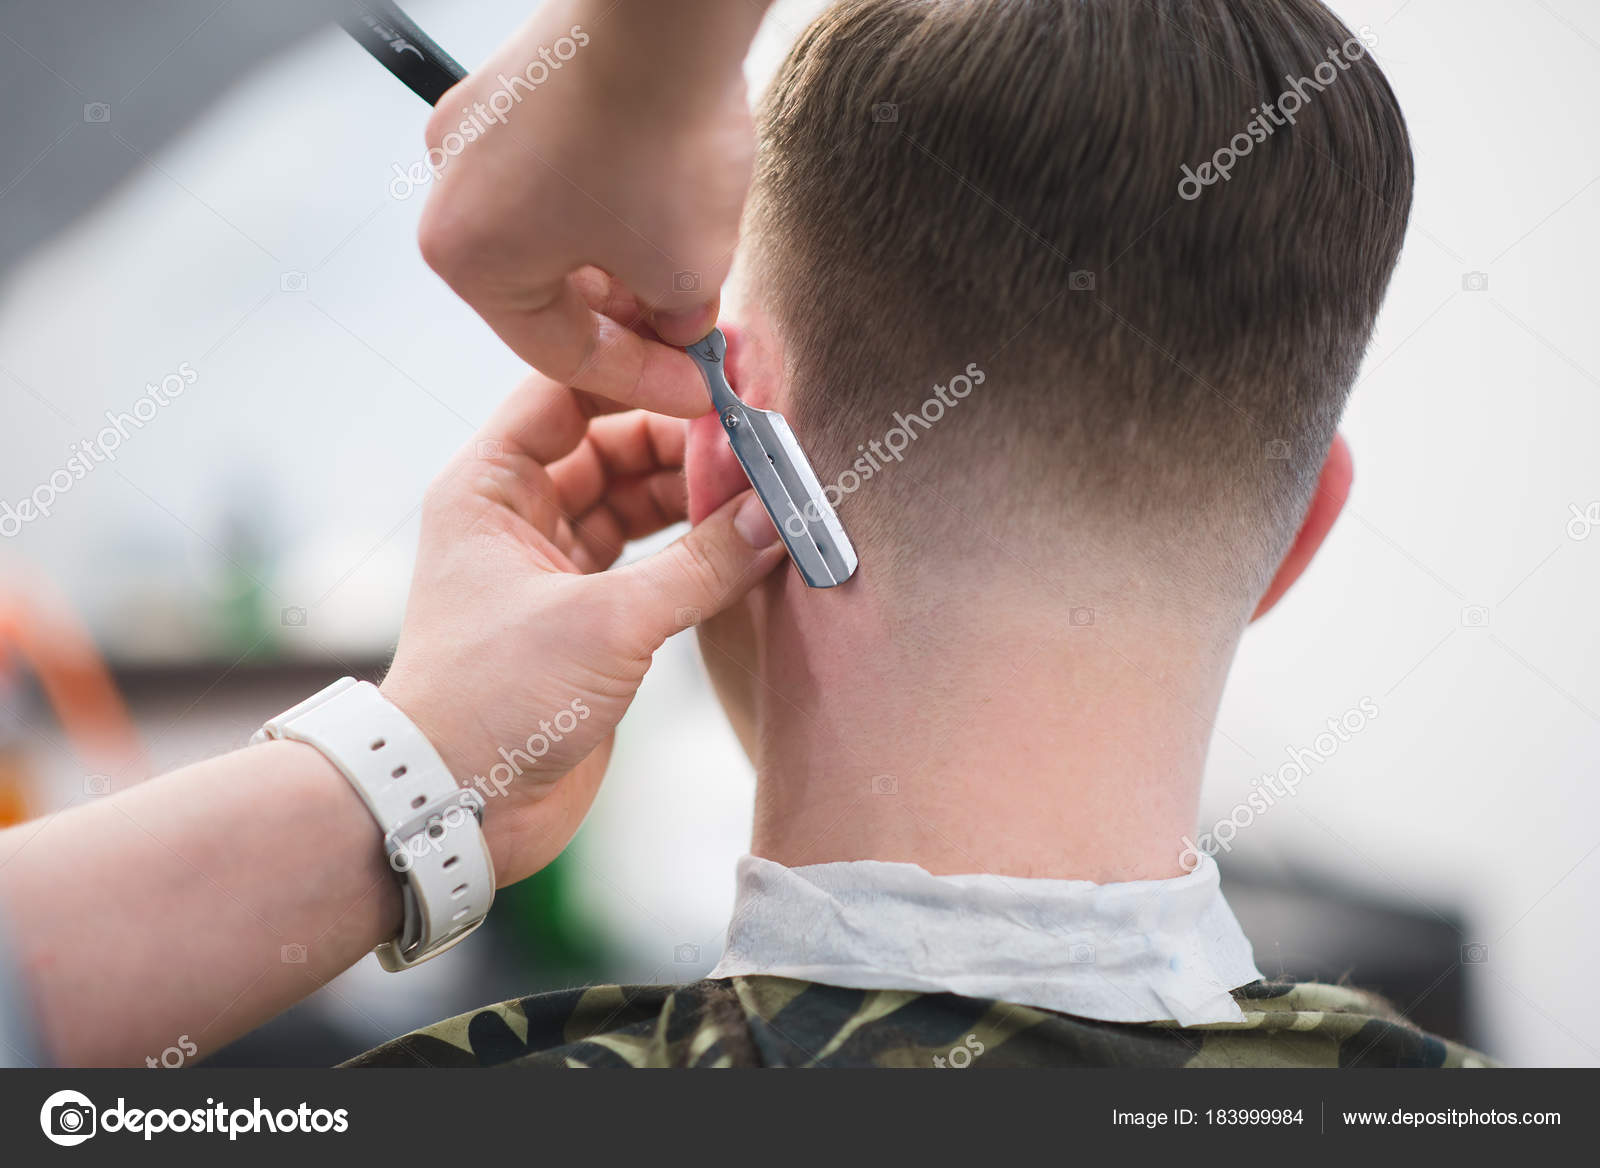 The Hairdresser Makes A Stylish Mens Hairstyle With A Dangerous